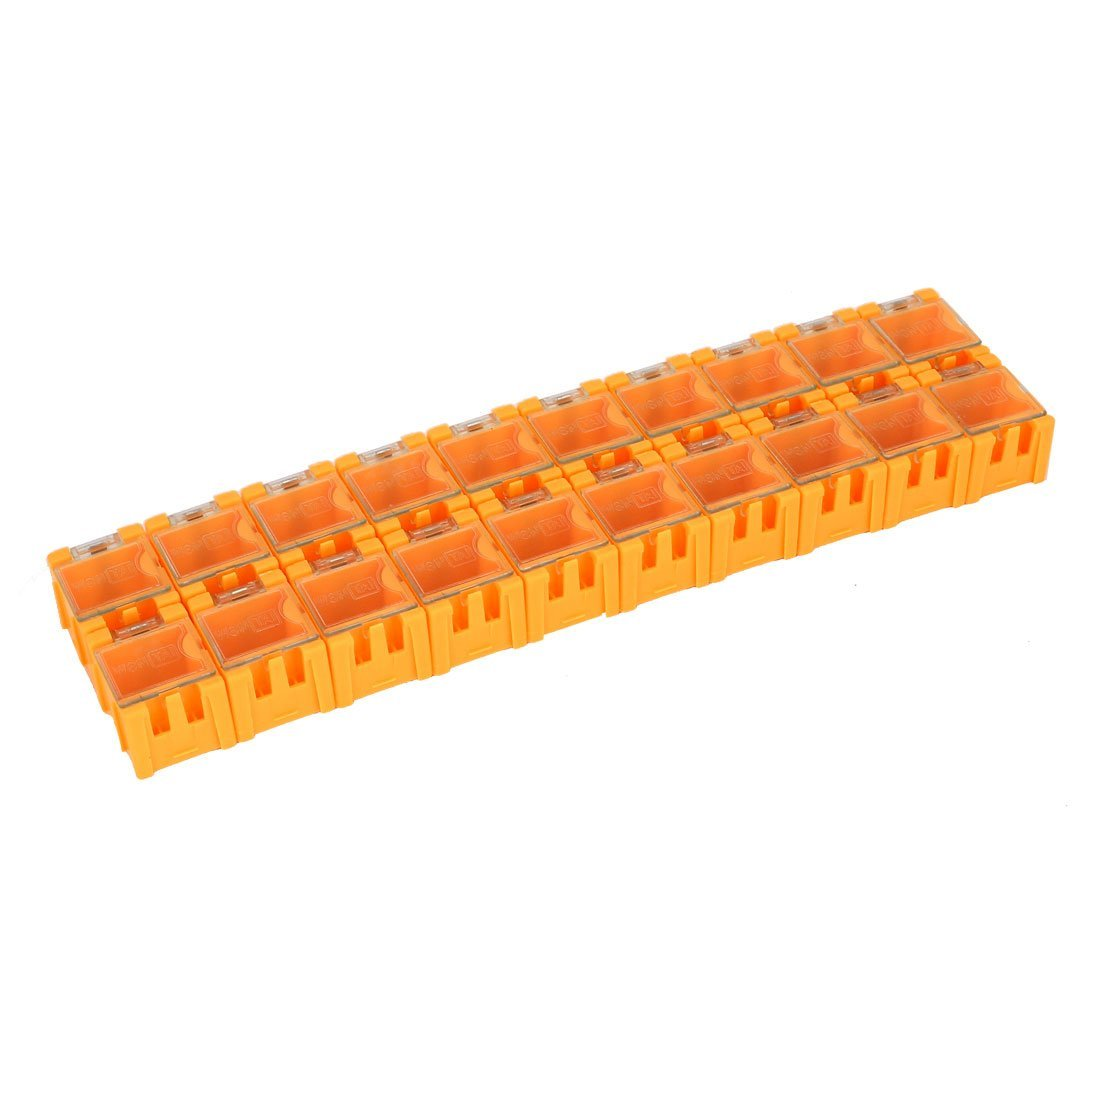 Aexit SMT SMD Tool Organizers Electronic Components Storage Box Case Organizer Tool Boxes 20Pcs Orange